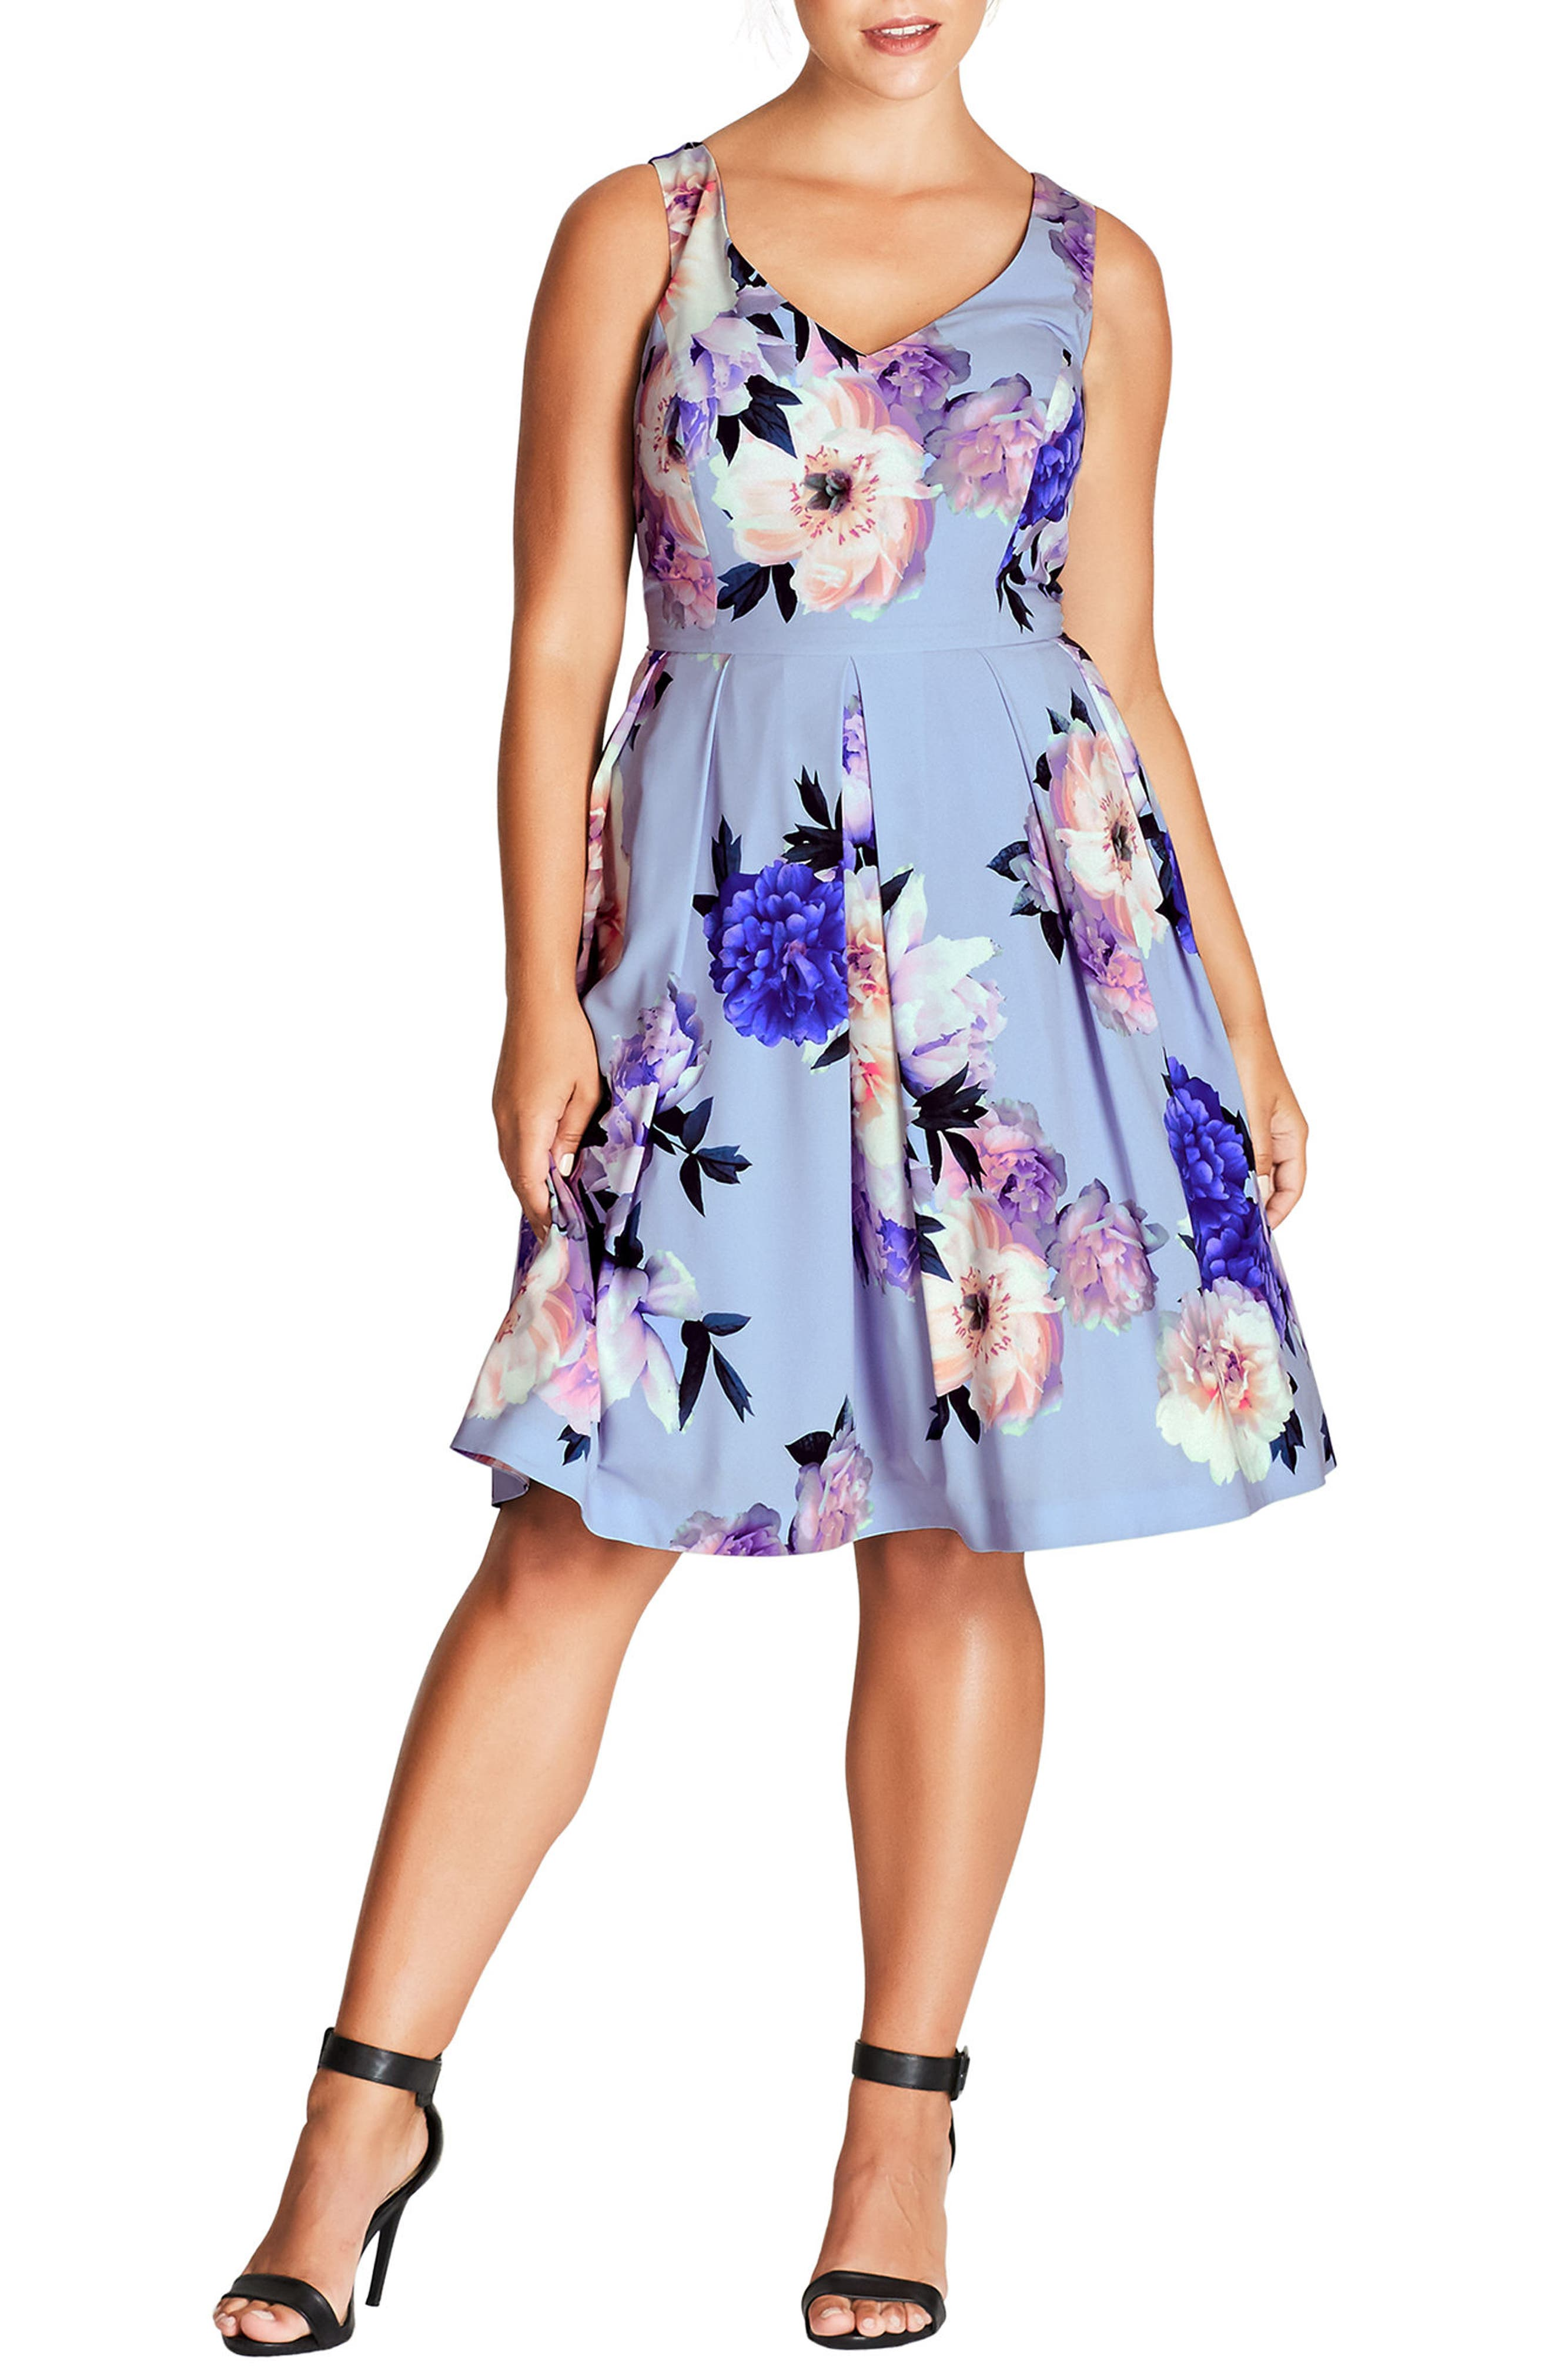 Alternate Image 1 Selected - City Chic Soft Blues Fit & Flare Dress (Plus Size)